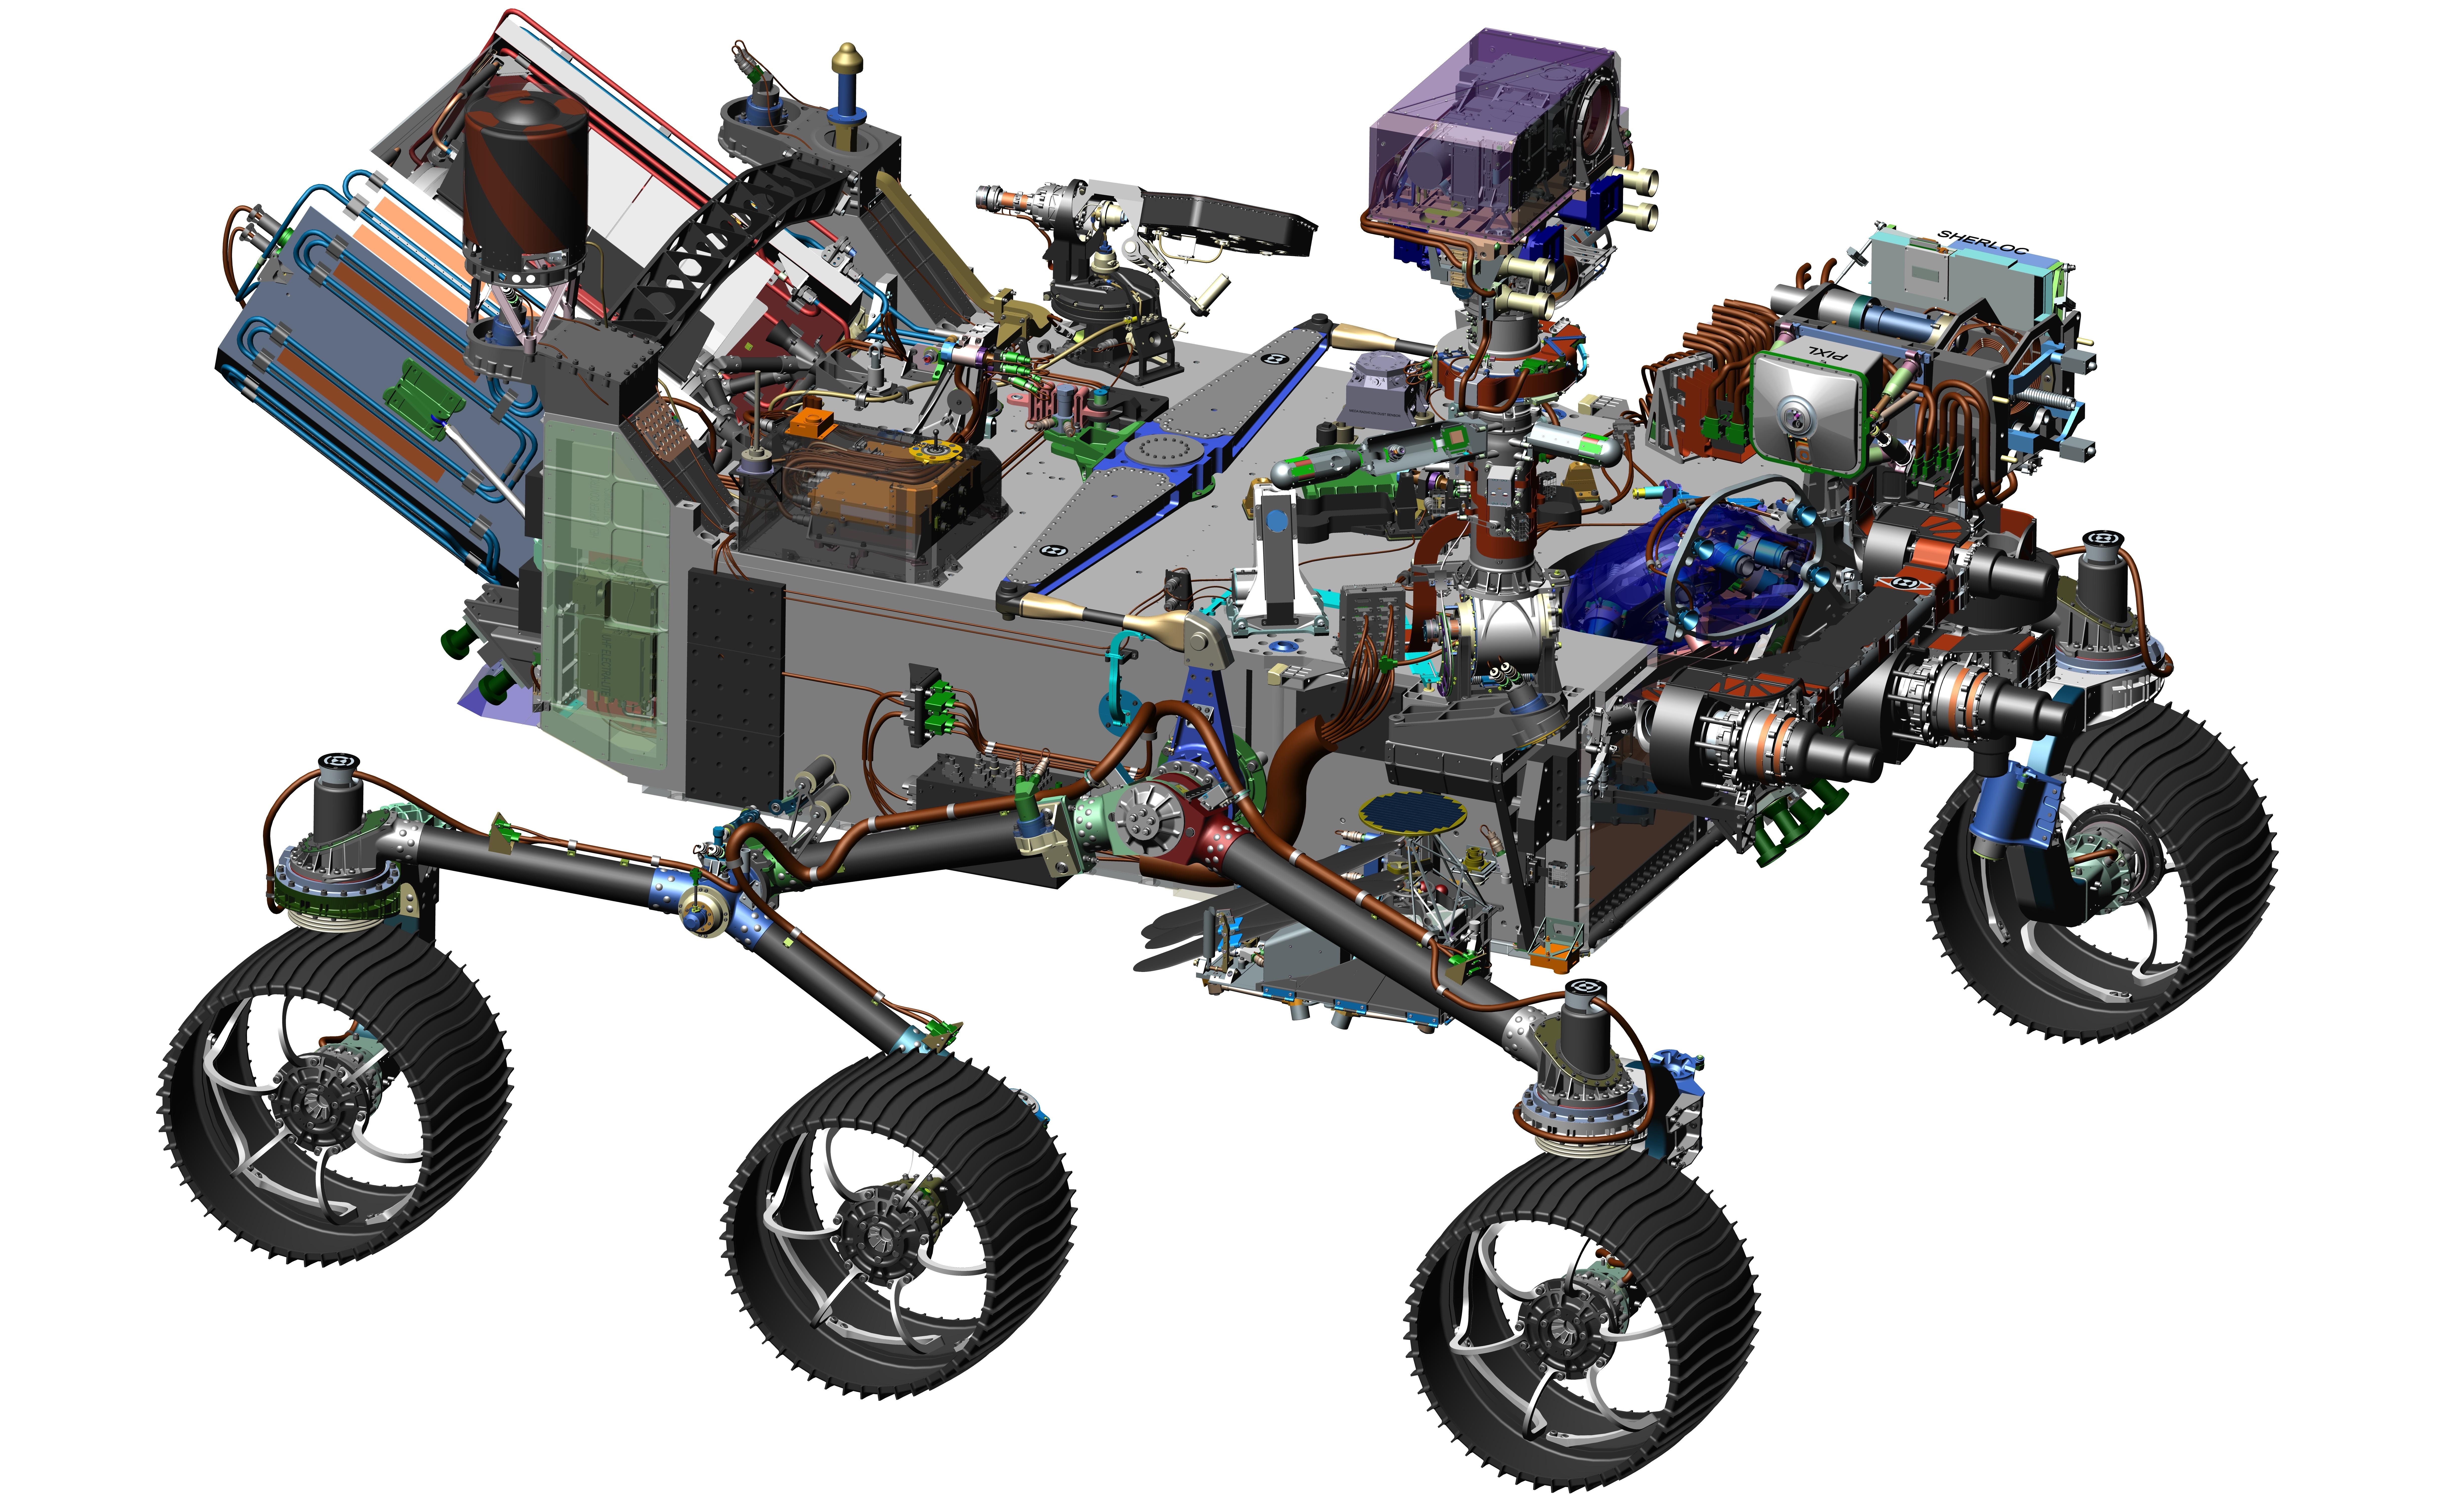 A computer-assisted model of the Mars 2020 rover, which is expected to look for signs of habitable environments on the Red Planet. It also will cache samples for possible return to Earth by another mission. Credit: NASA/JPL-Caltech Image credit: None